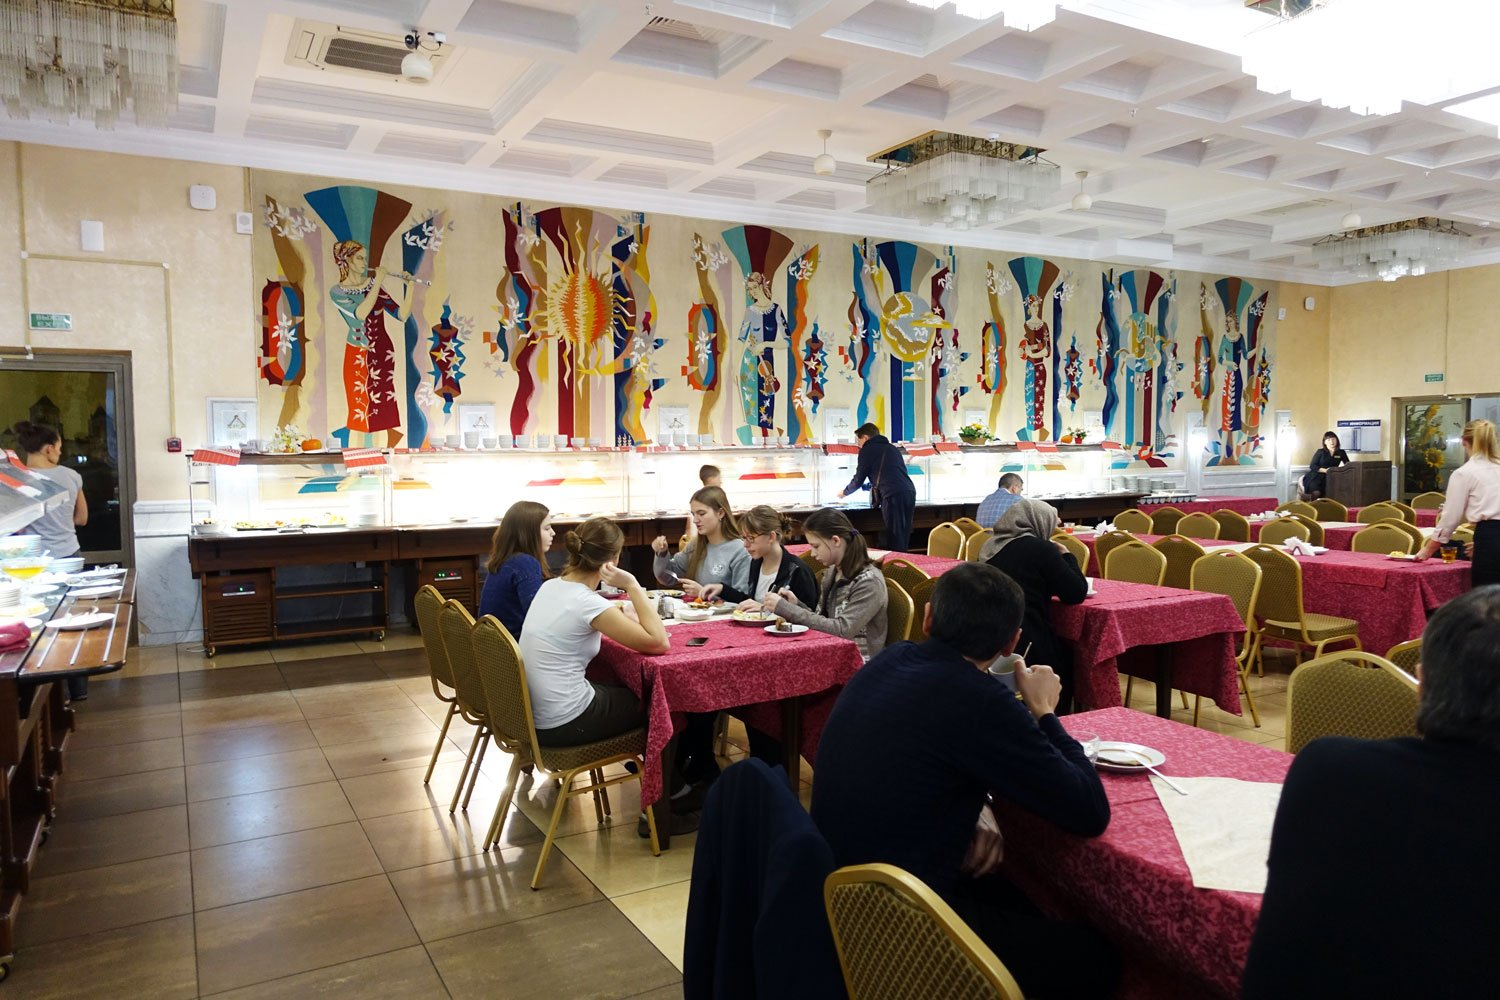 The breakfast hall at the hotel belarus with several people eating.